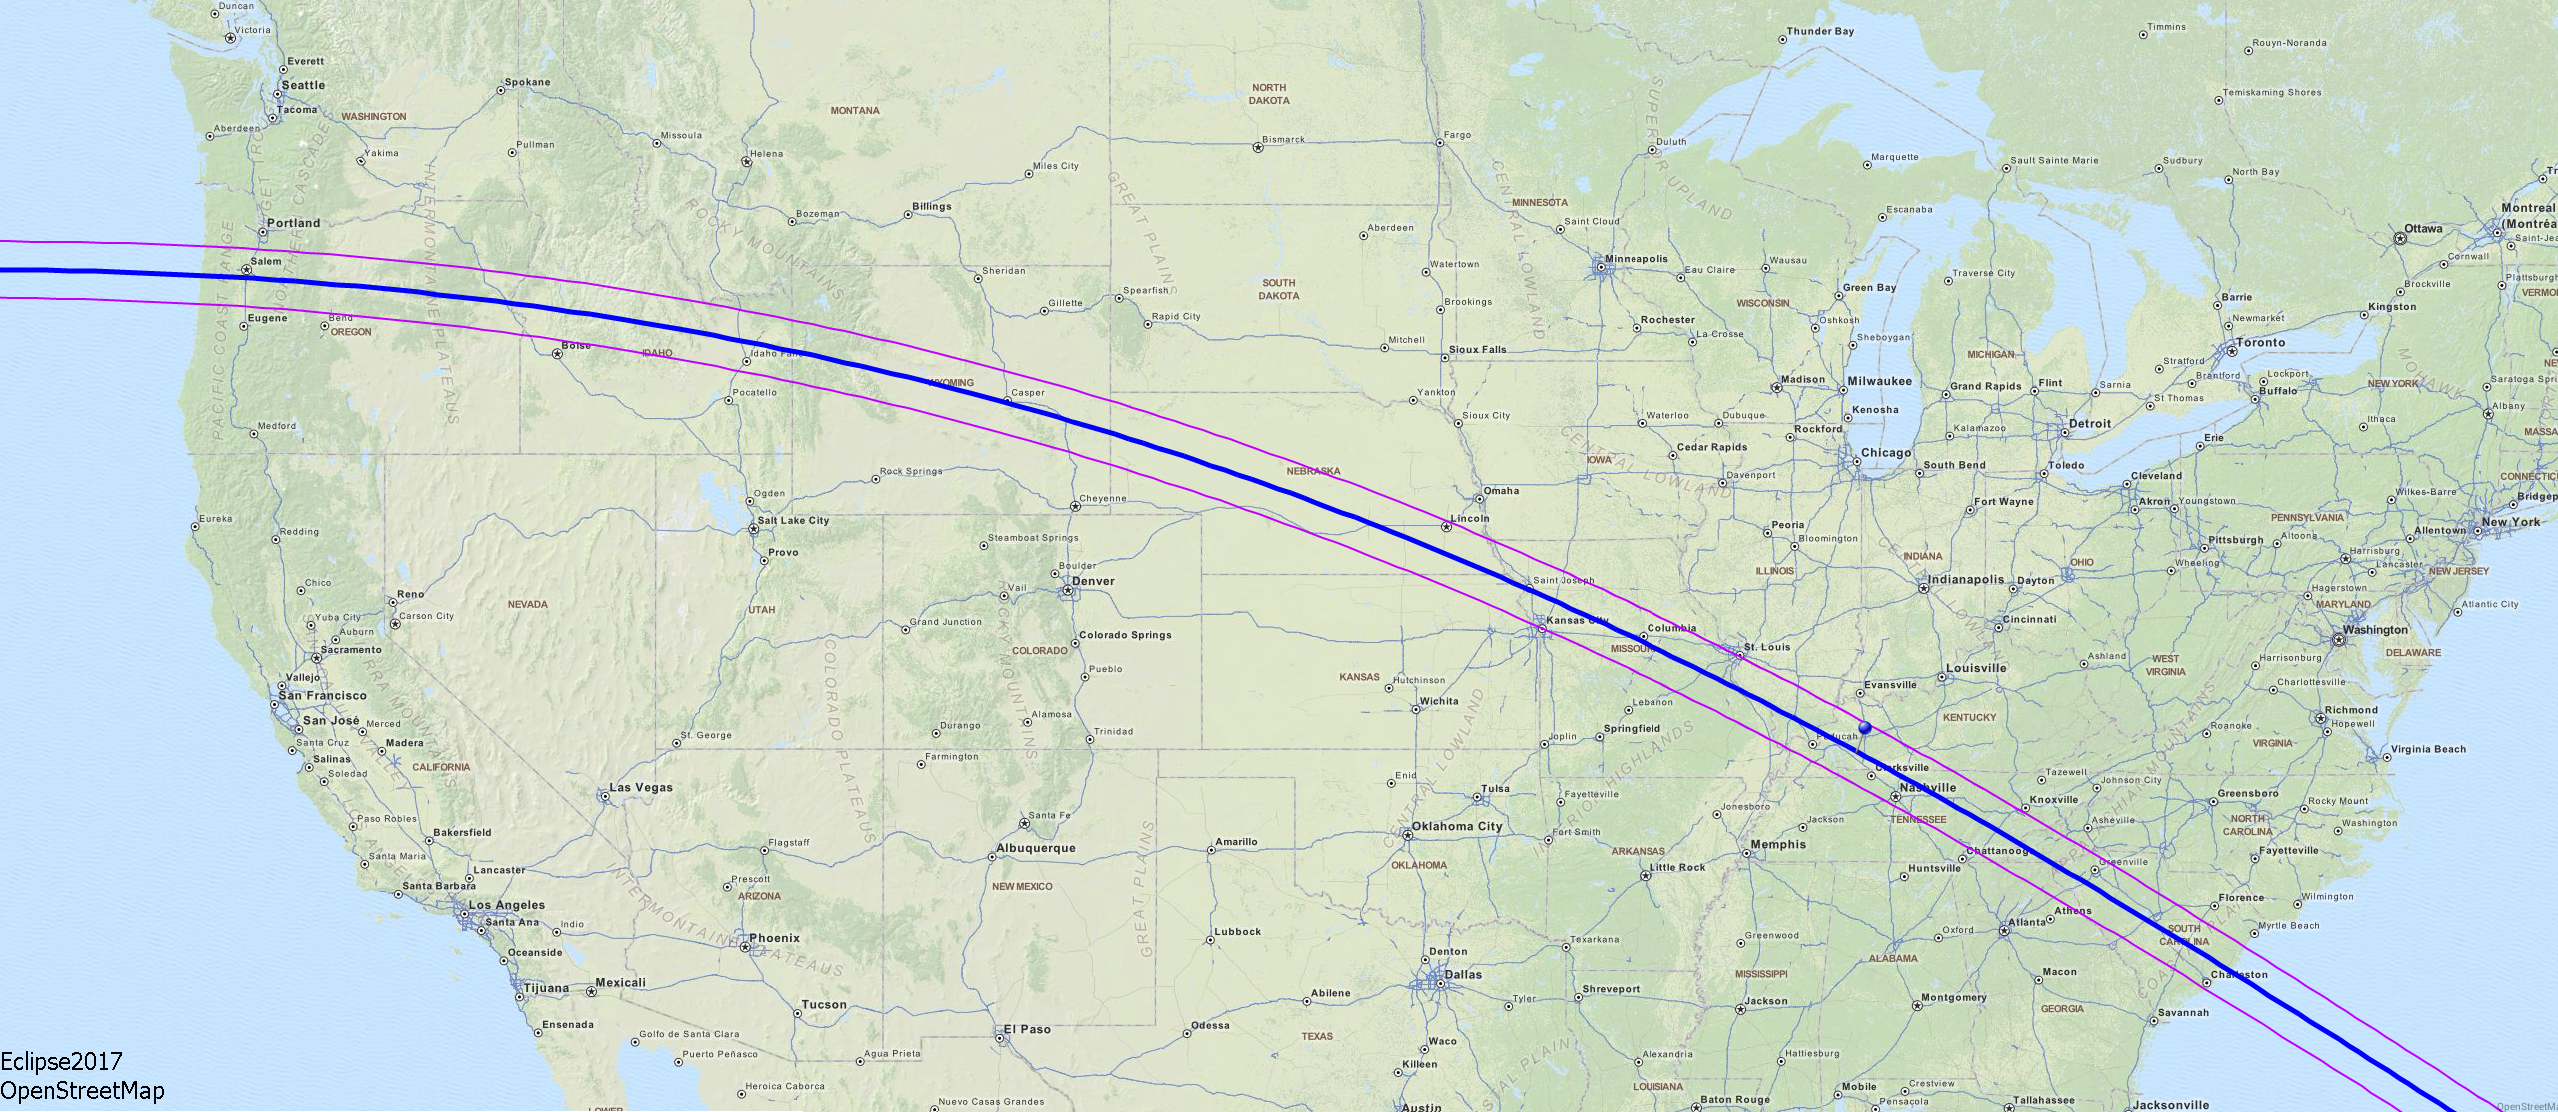 Map of the solar eclipse of August 21, 2017, showing path of totality.